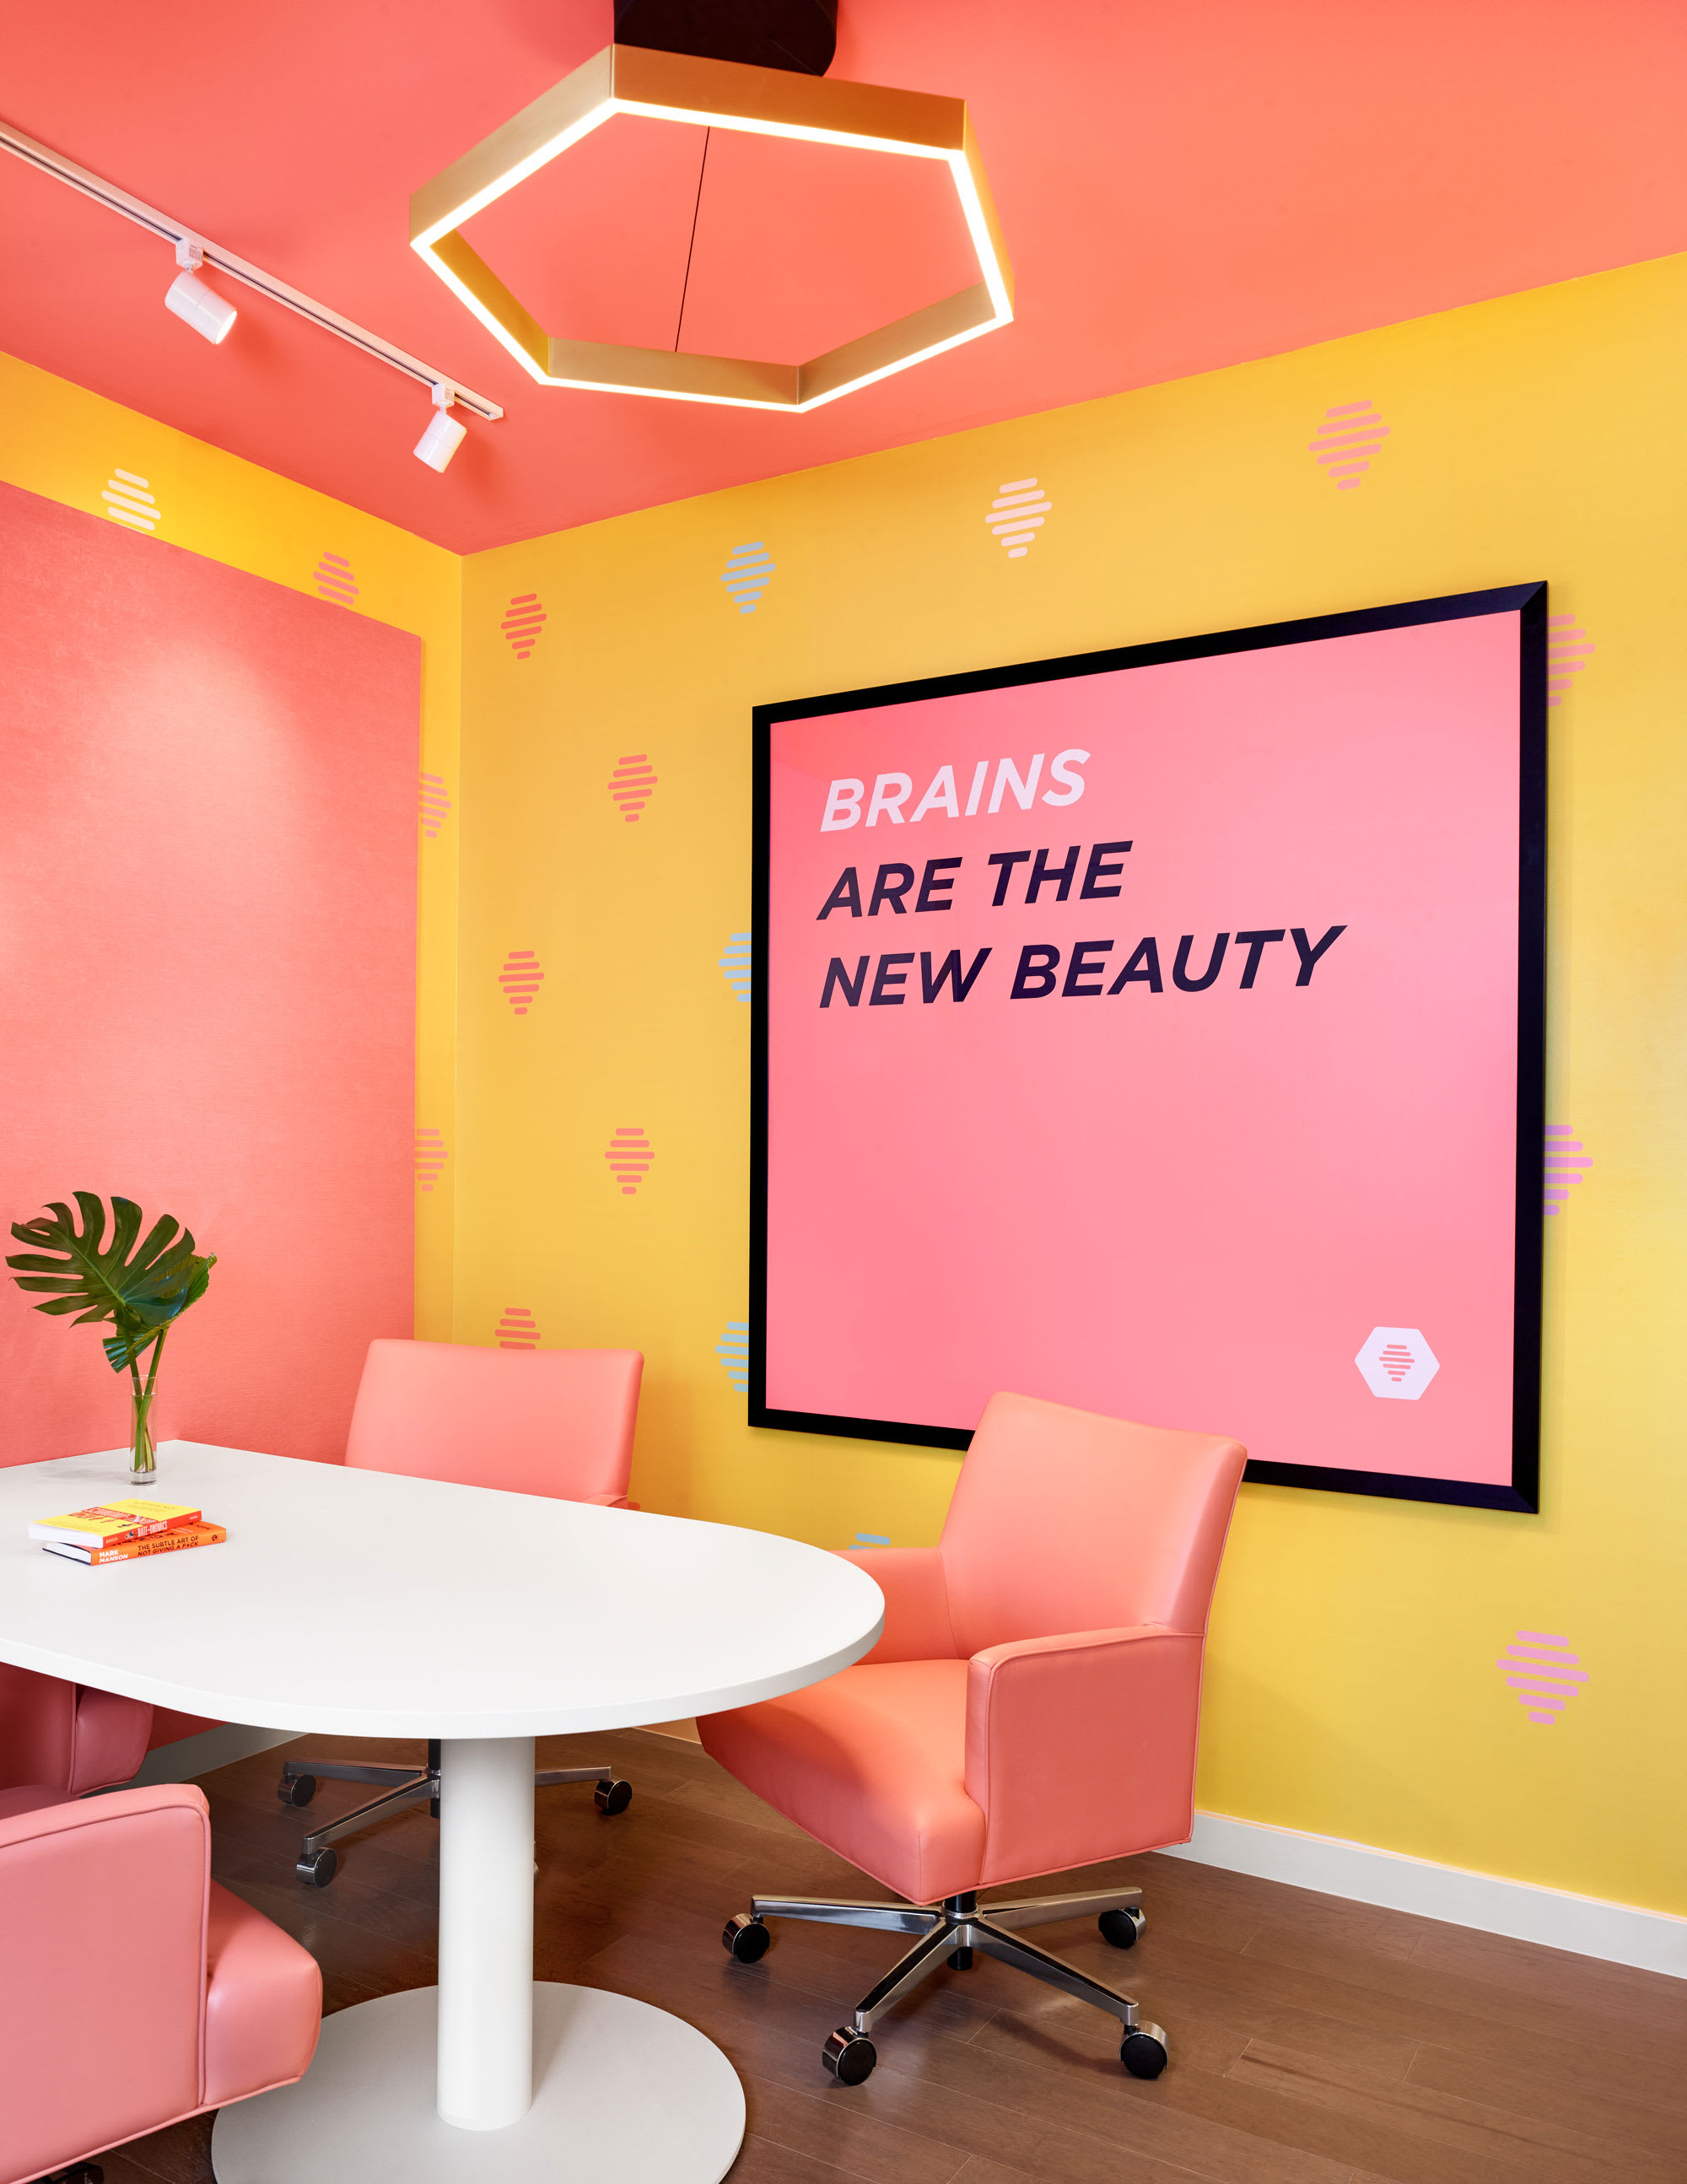 Interior Design by Mark Odom Studio seen at Bumble, Austin - Bumble Headquarters